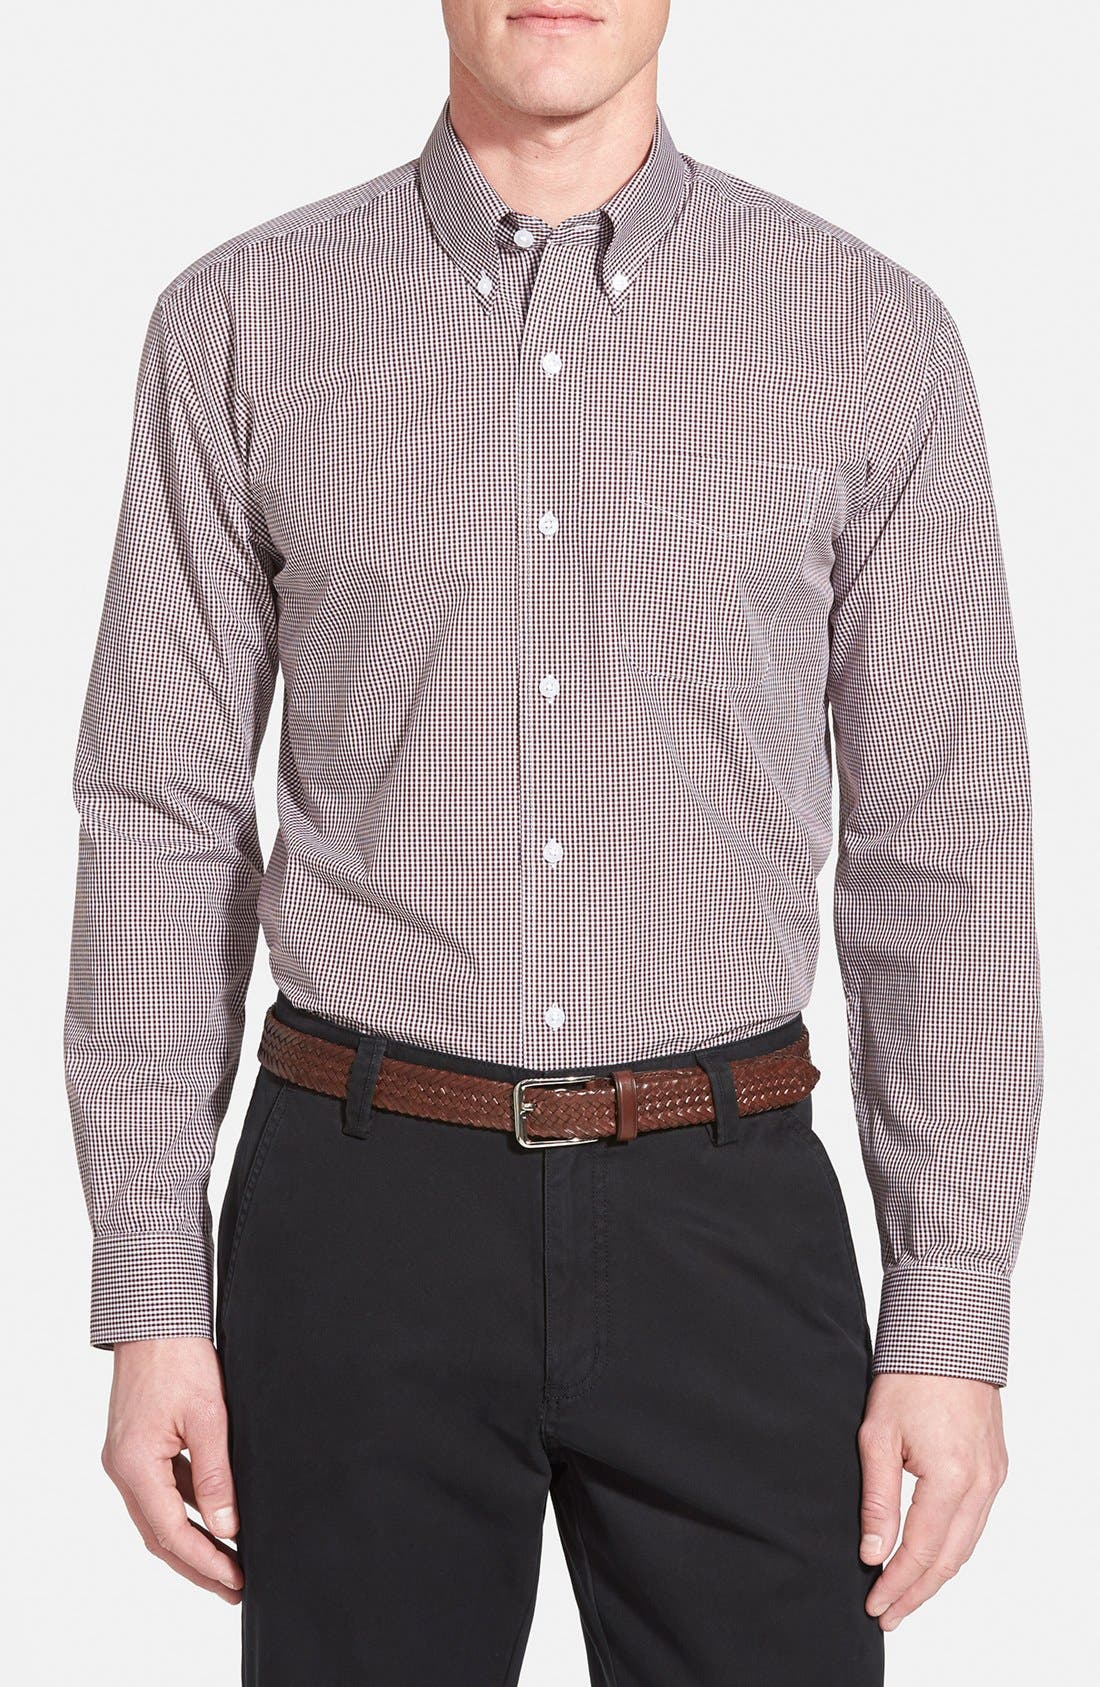 Cutter & Buck 'Epic Easy Care' Classic Fit Wrinkle Free Gingham Sport Shirt (Online Only)